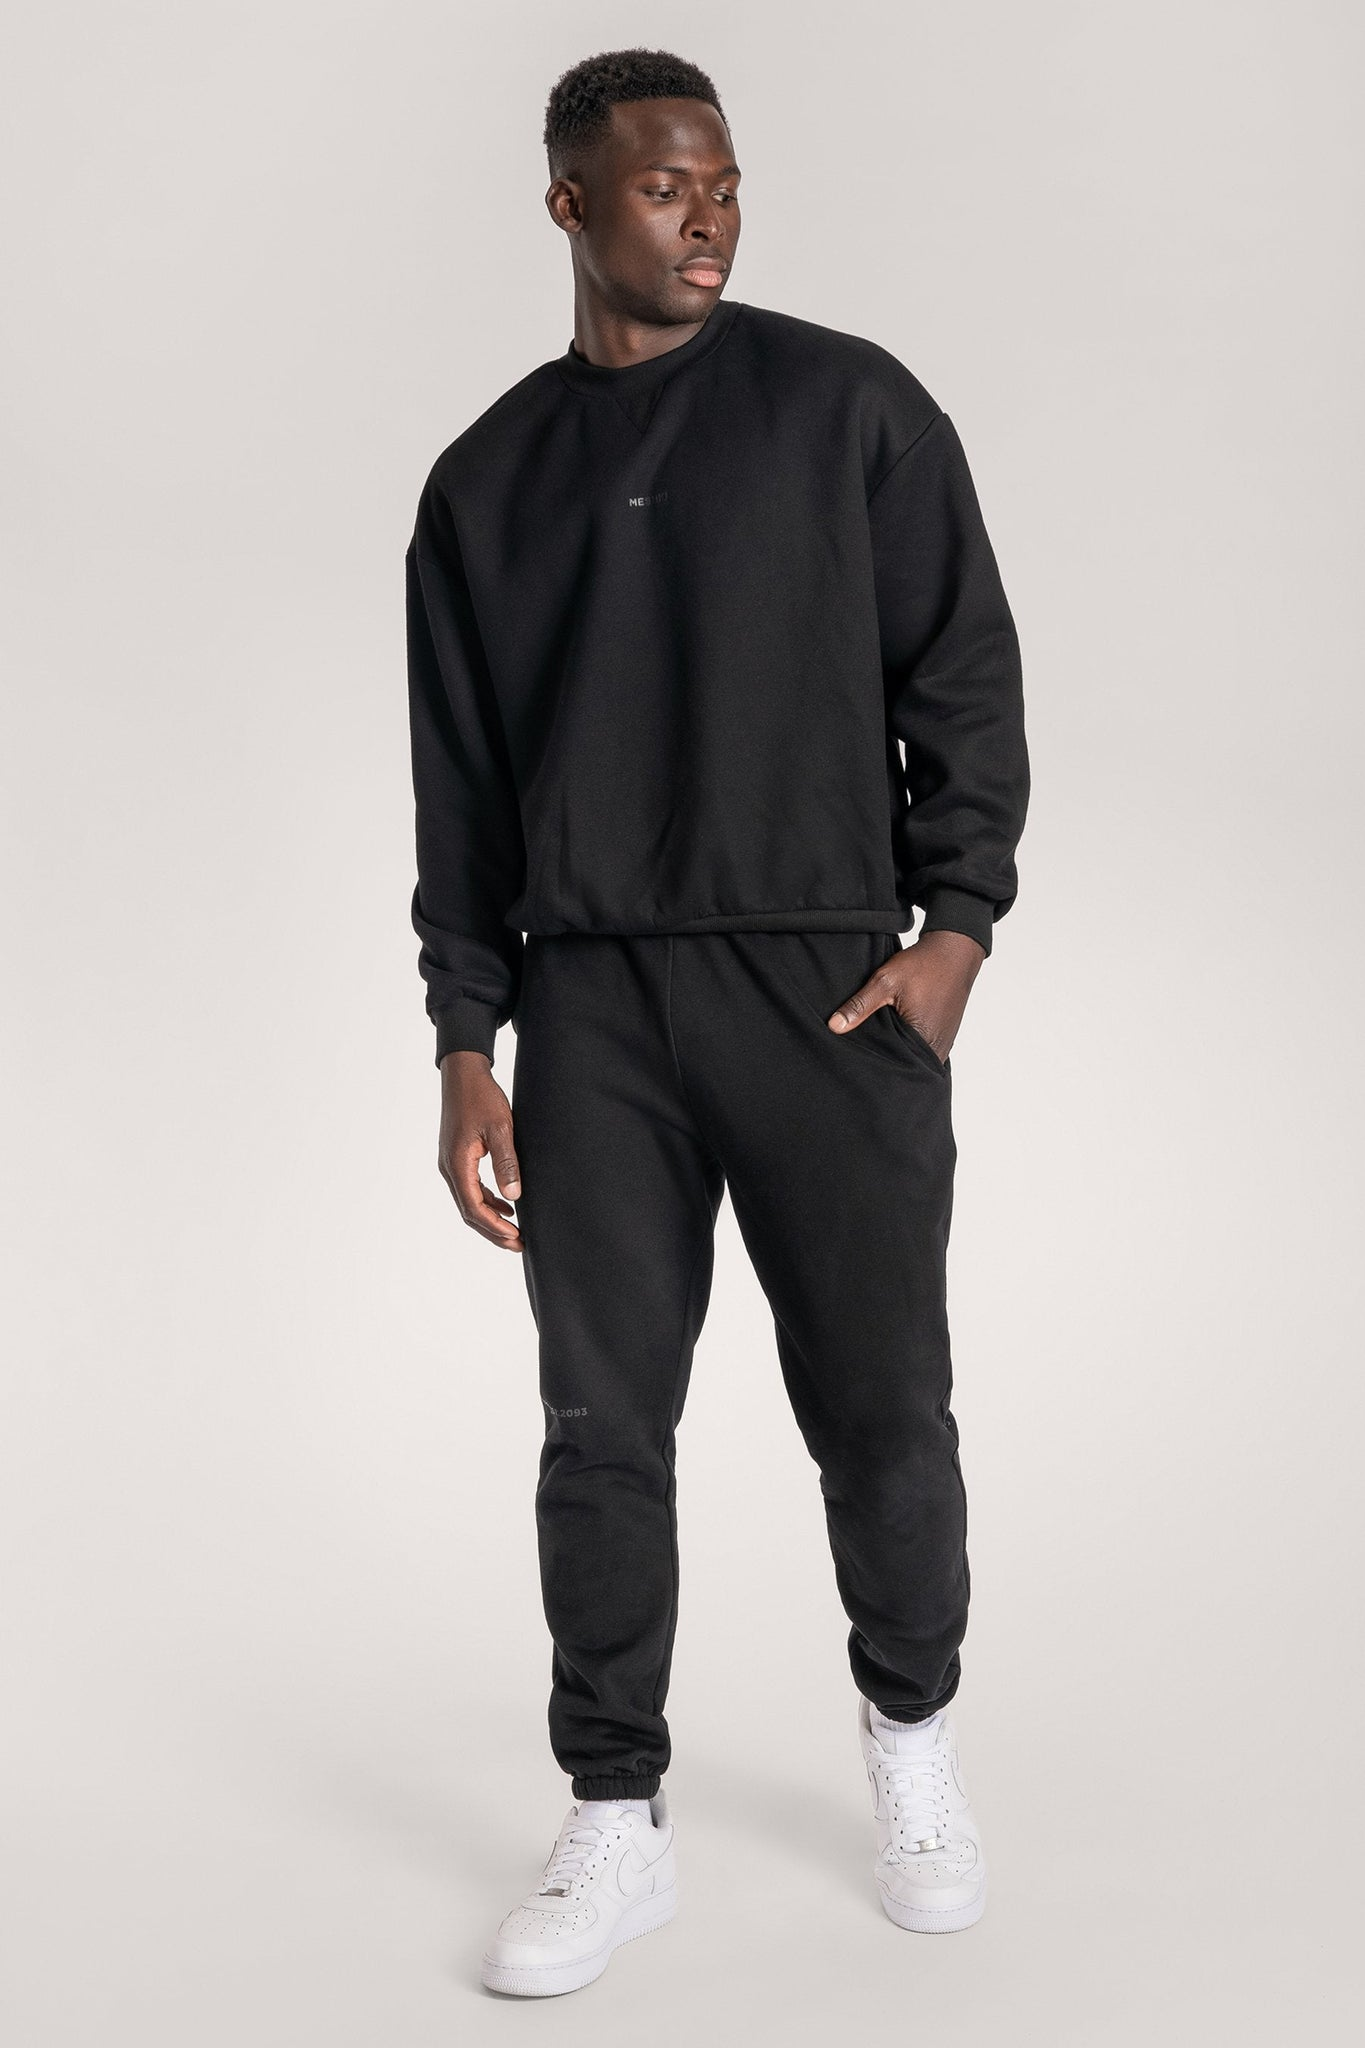 Max Unisex Crew Neck Cosy Sweater - Black - MESHKI